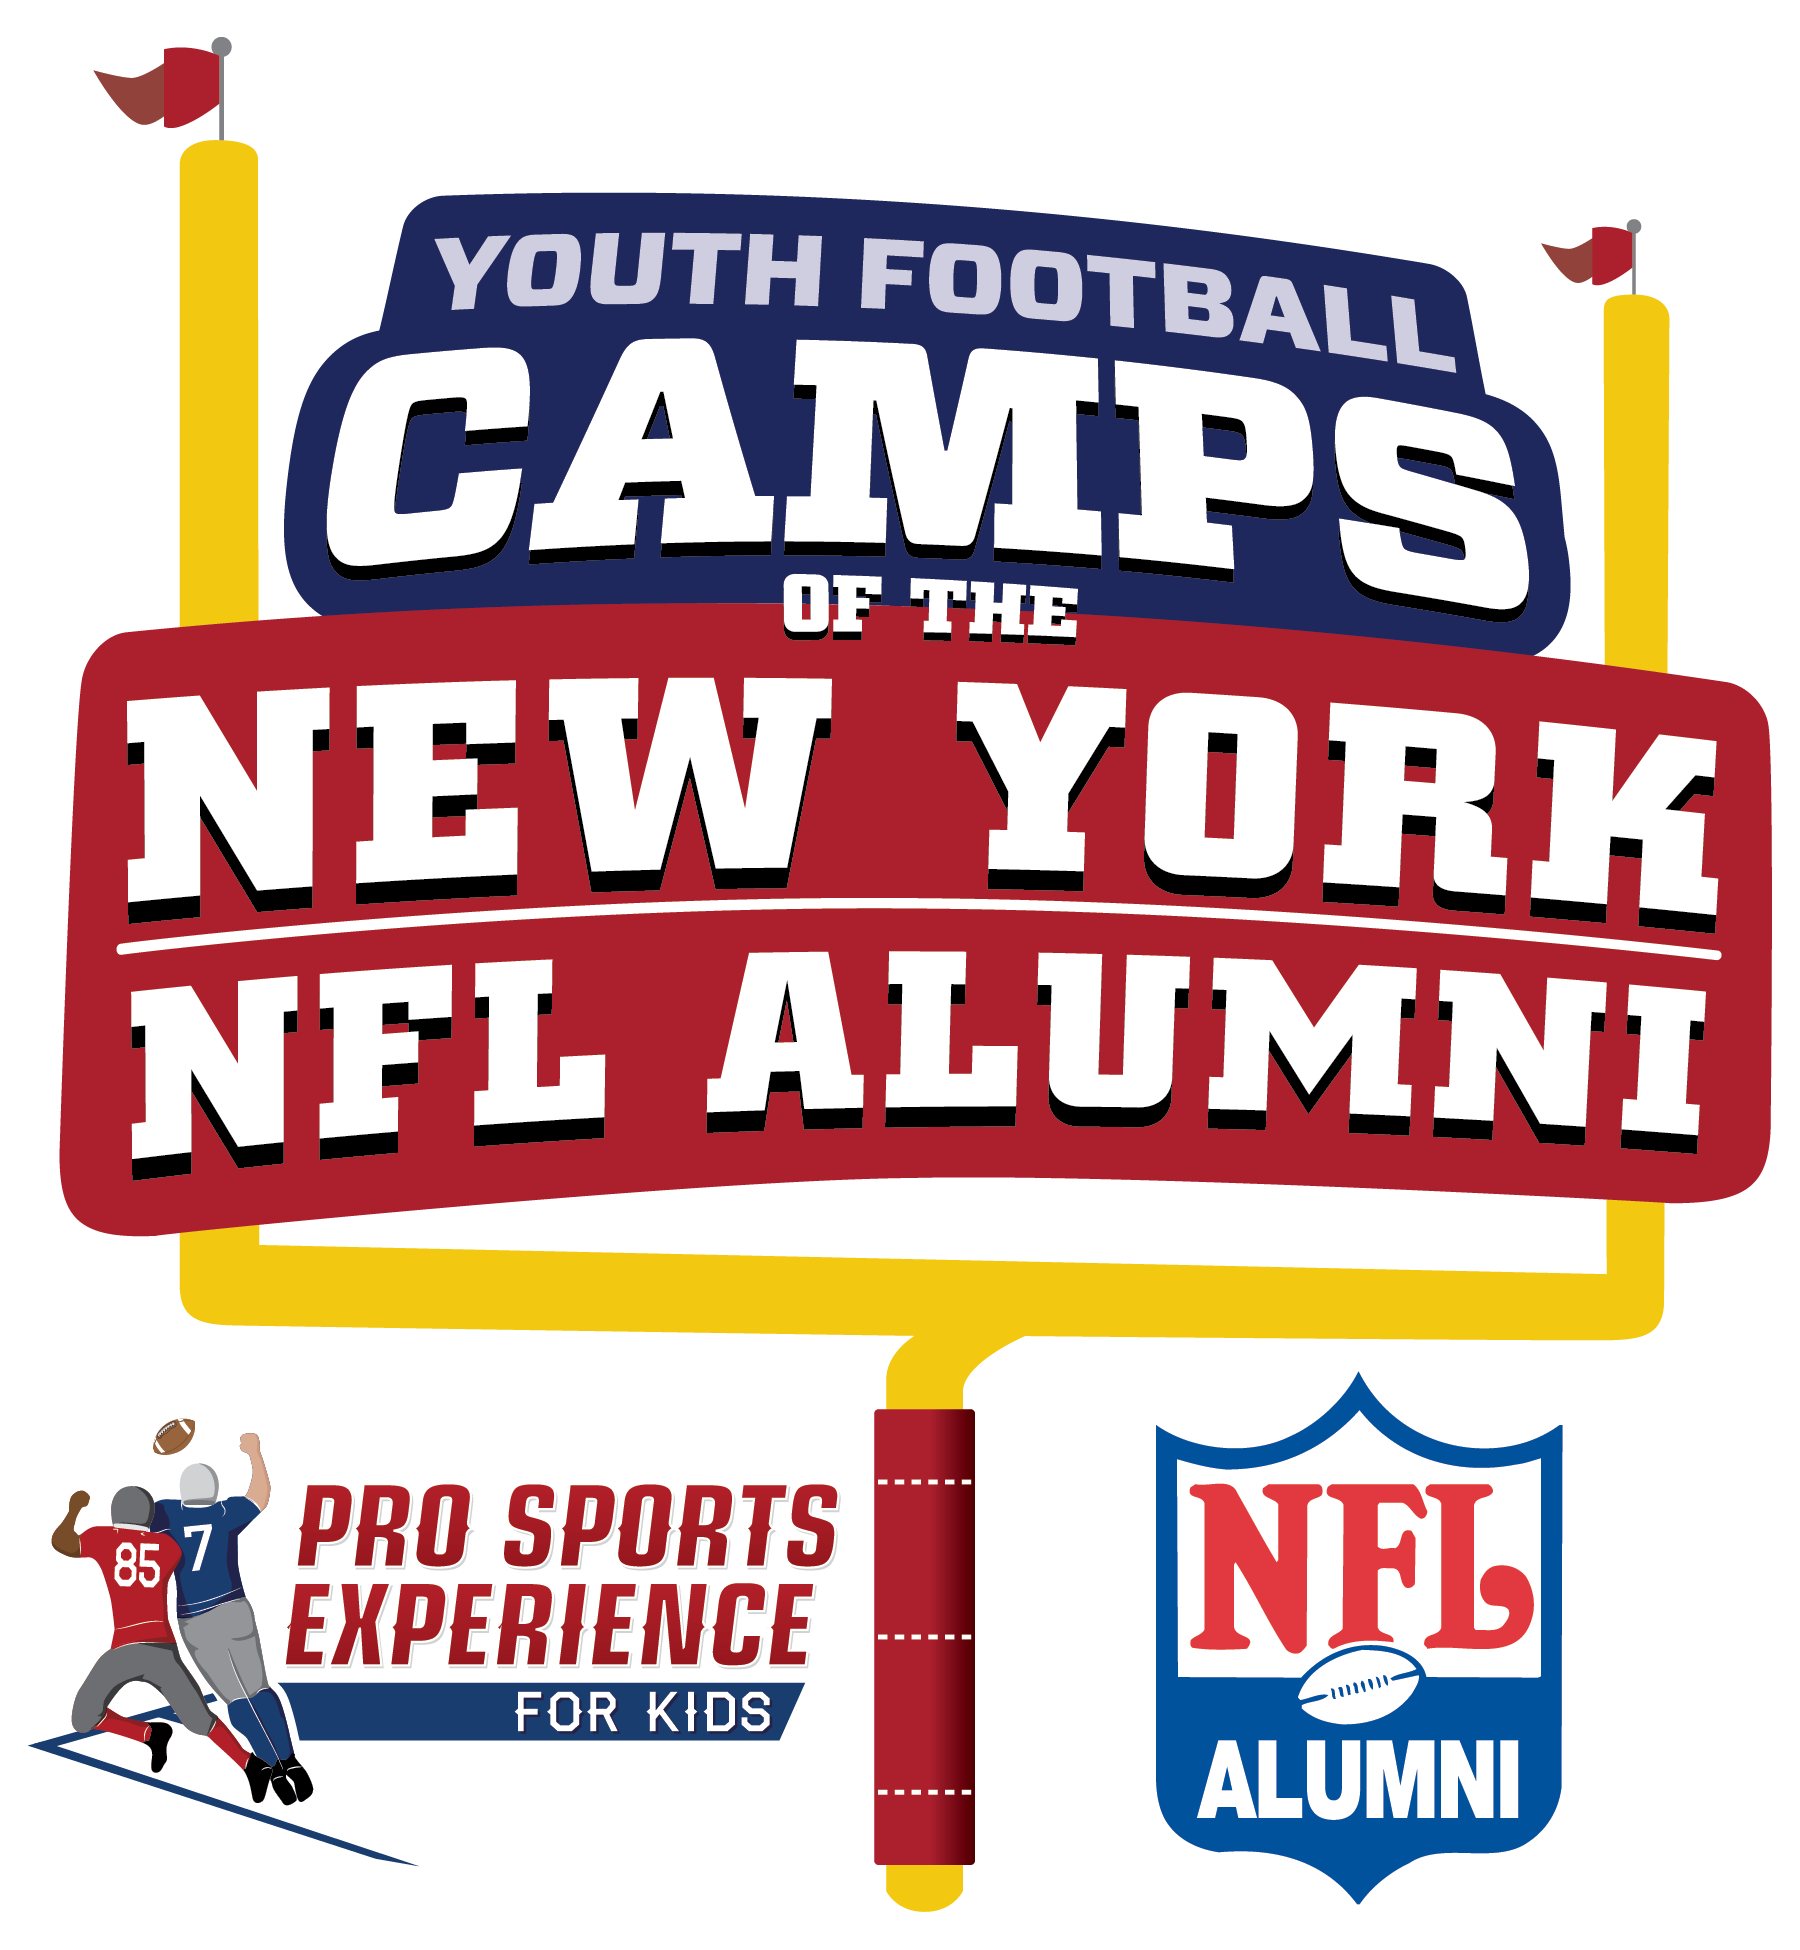 New York NFL Alumni Hero Youth Football Camps - Manhattan